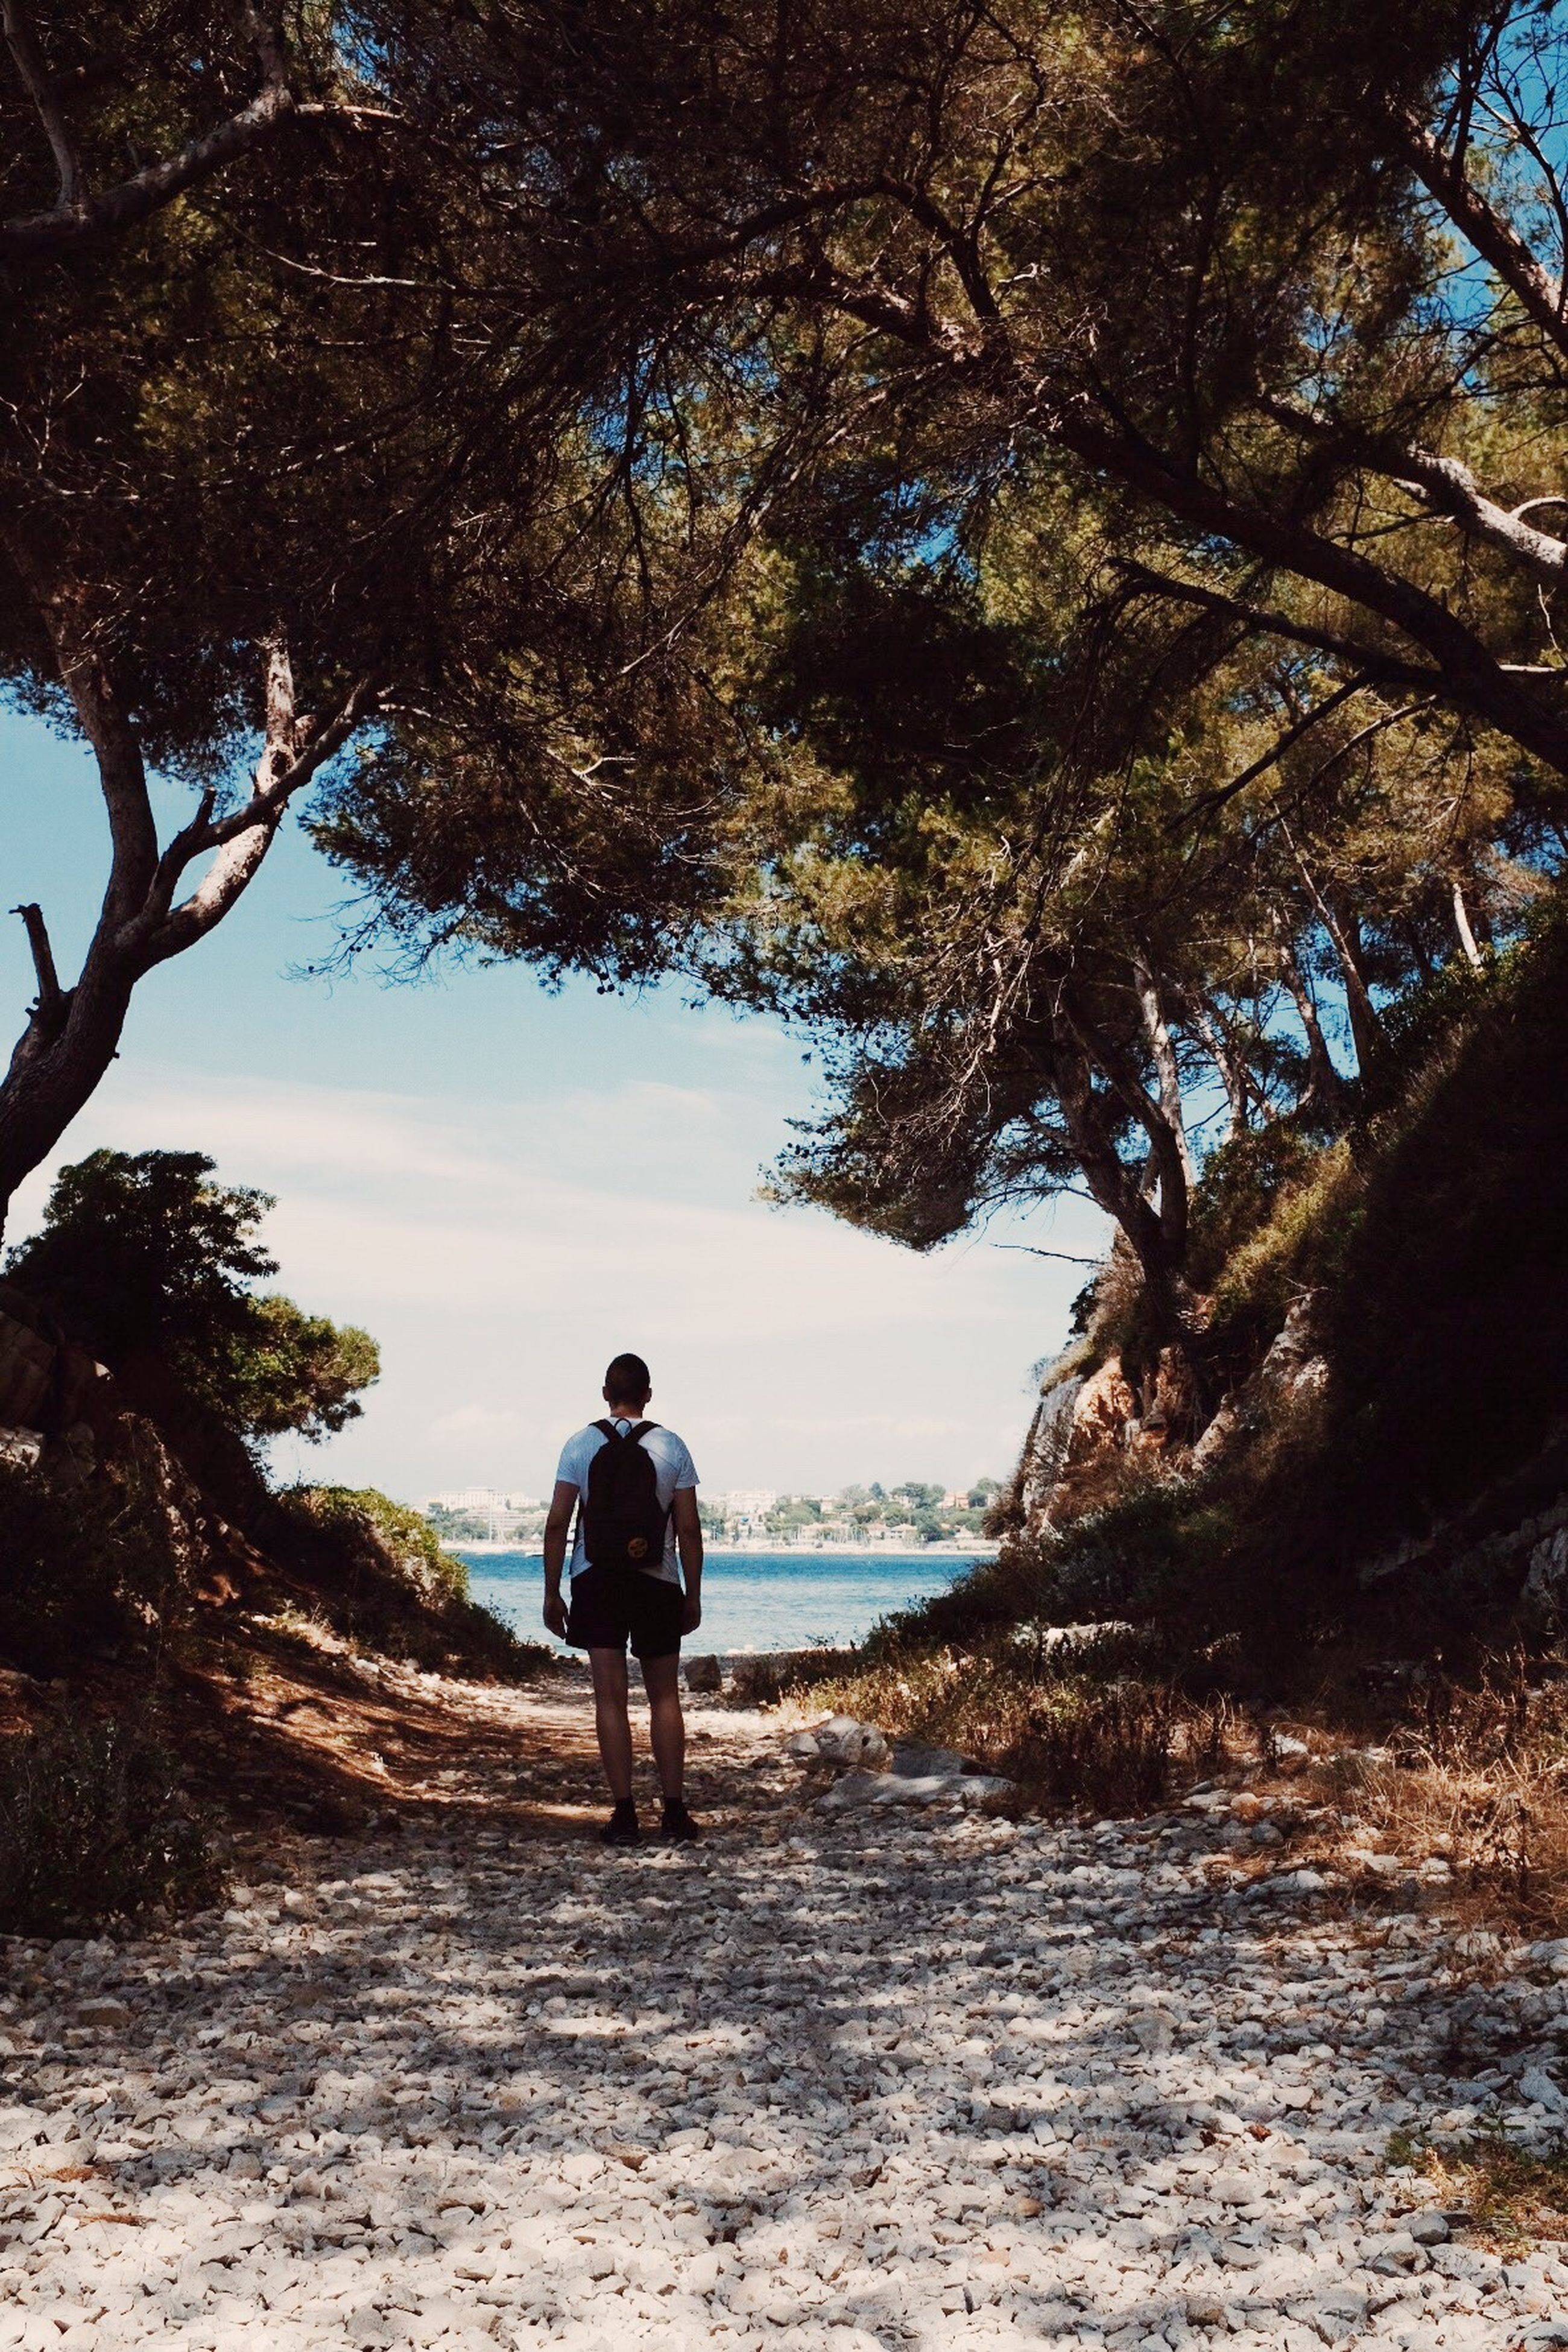 rear view, real people, tree, one person, full length, nature, beauty in nature, leisure activity, scenics, standing, lifestyles, tranquil scene, casual clothing, men, day, outdoors, landscape, sky